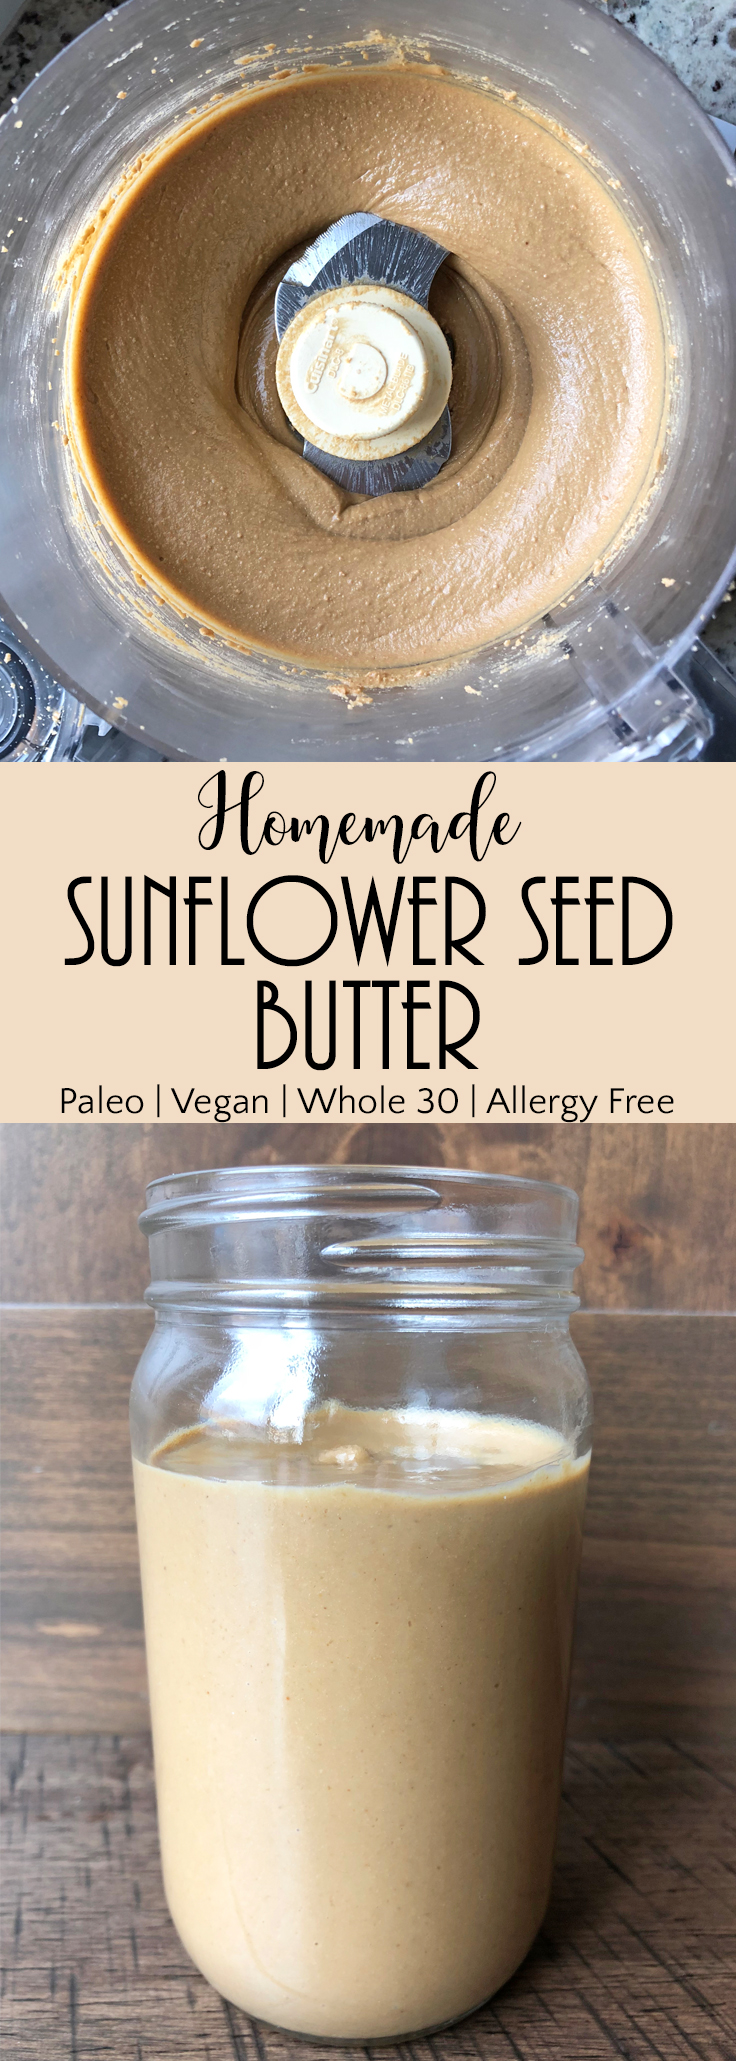 Homemade Unsweetened Sunflower Seed Butter.jpg